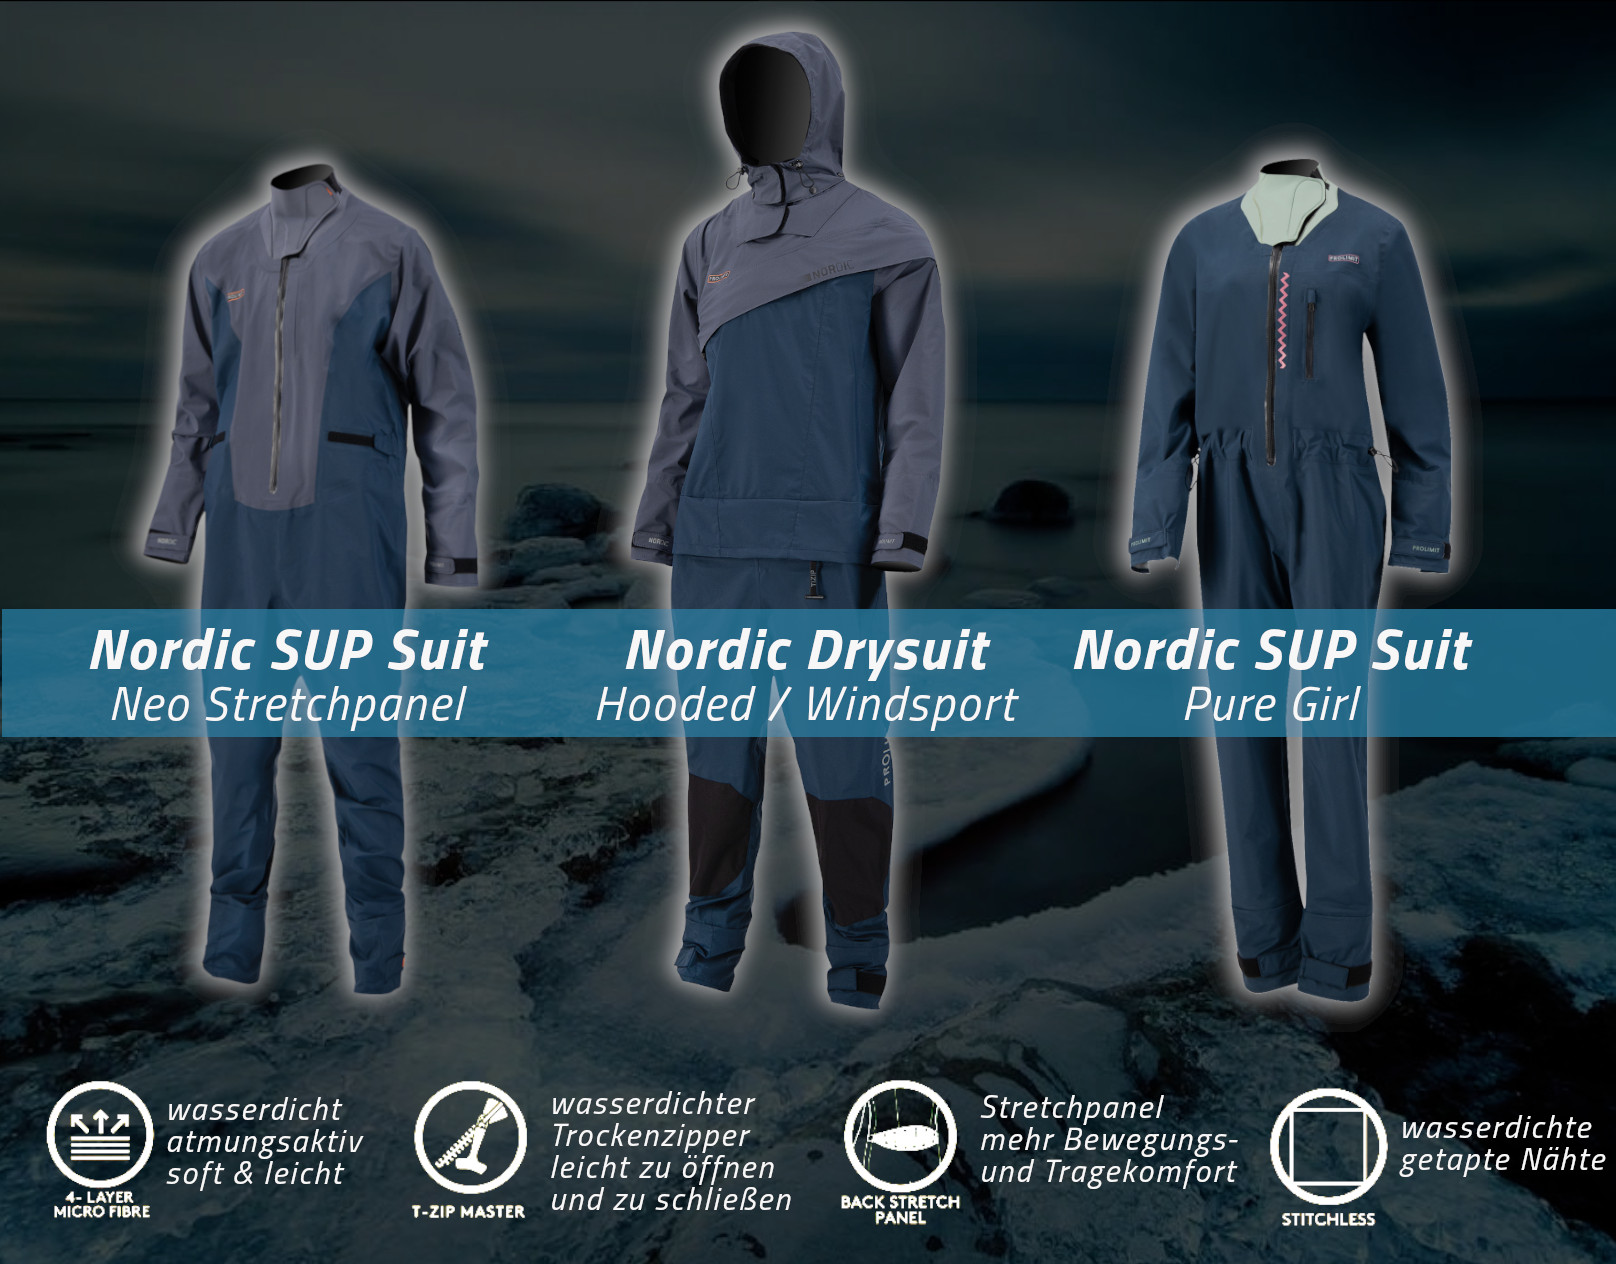 PROLIMIT NORDIC DRYSUITS // Making cold the new warm